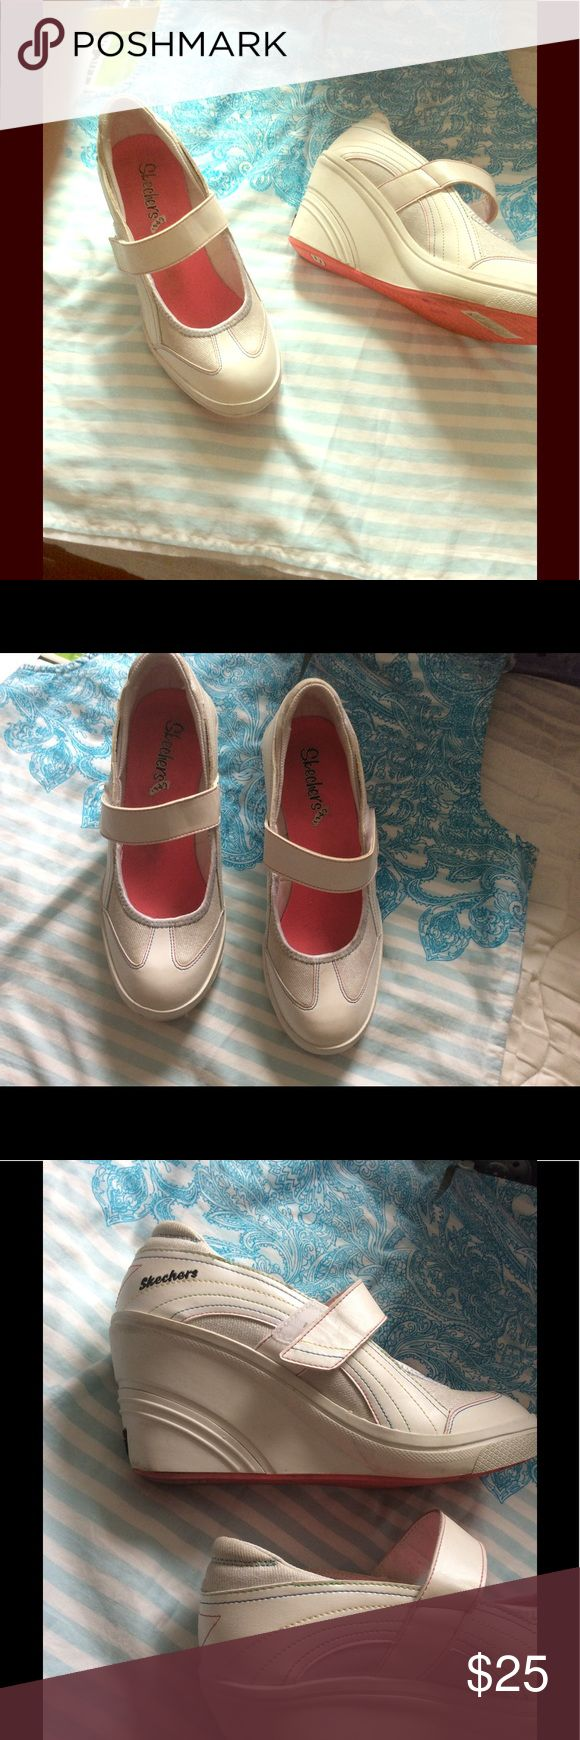 Sketchers model cali footwear Great condition wore only once.size 7.5 thin multicolor stripes over white. Skechers Shoes